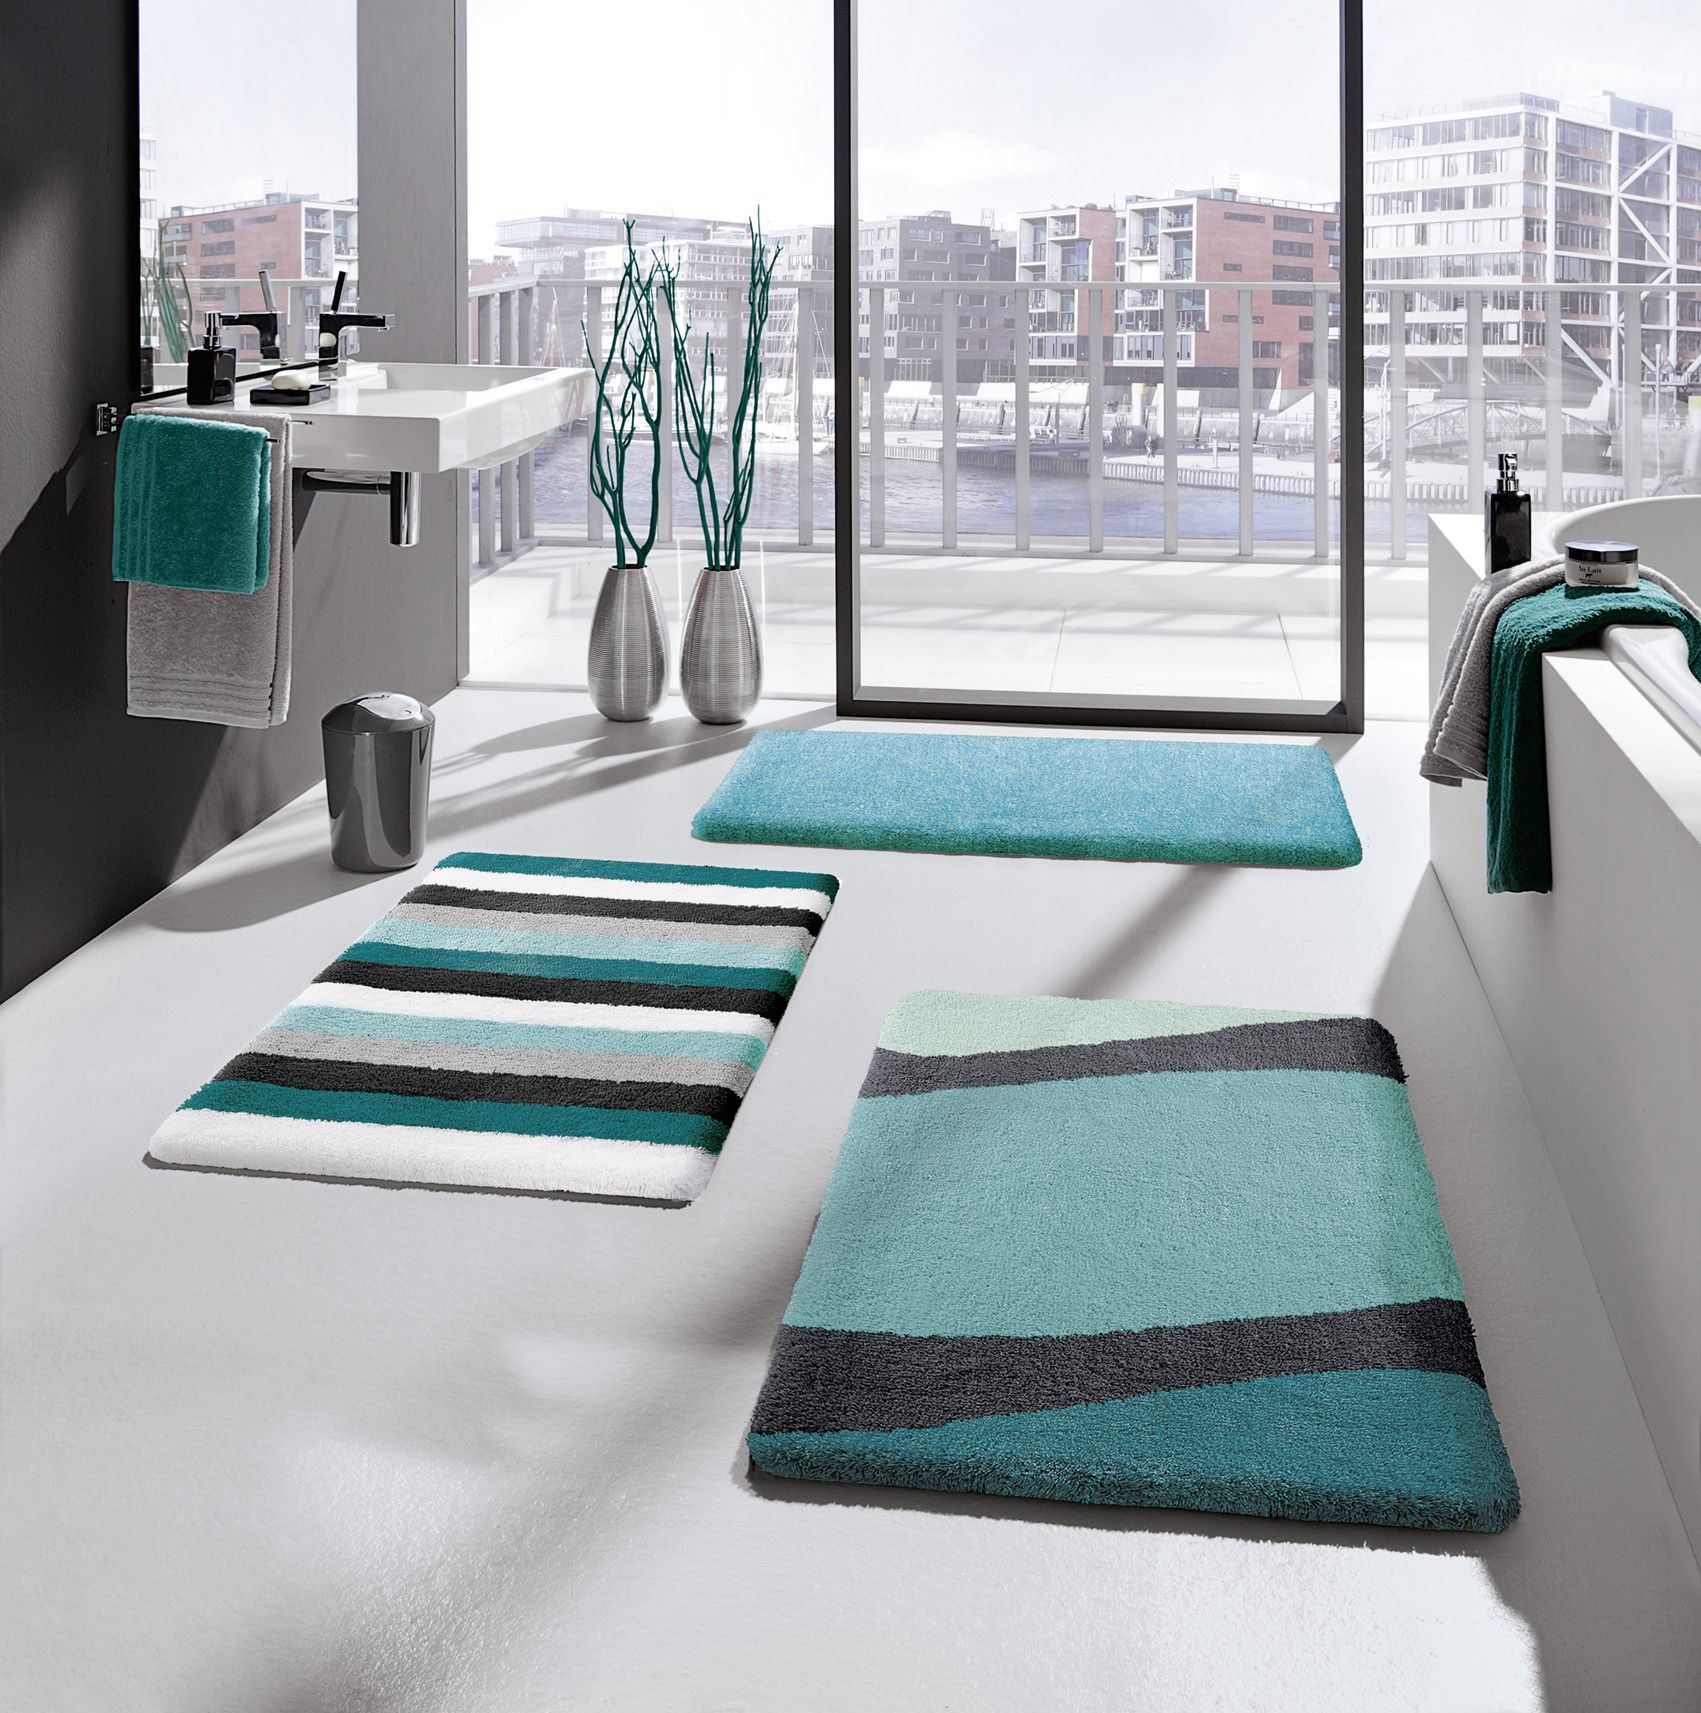 Who Doesn T Love This Gorgeous Cooling And Refreshing Shade Mix Fresh Aqua Tones With White And Feel Yo Large Bathroom Rugs Large Bath Rugs Long Bathroom Rugs [ 1713 x 1701 Pixel ]